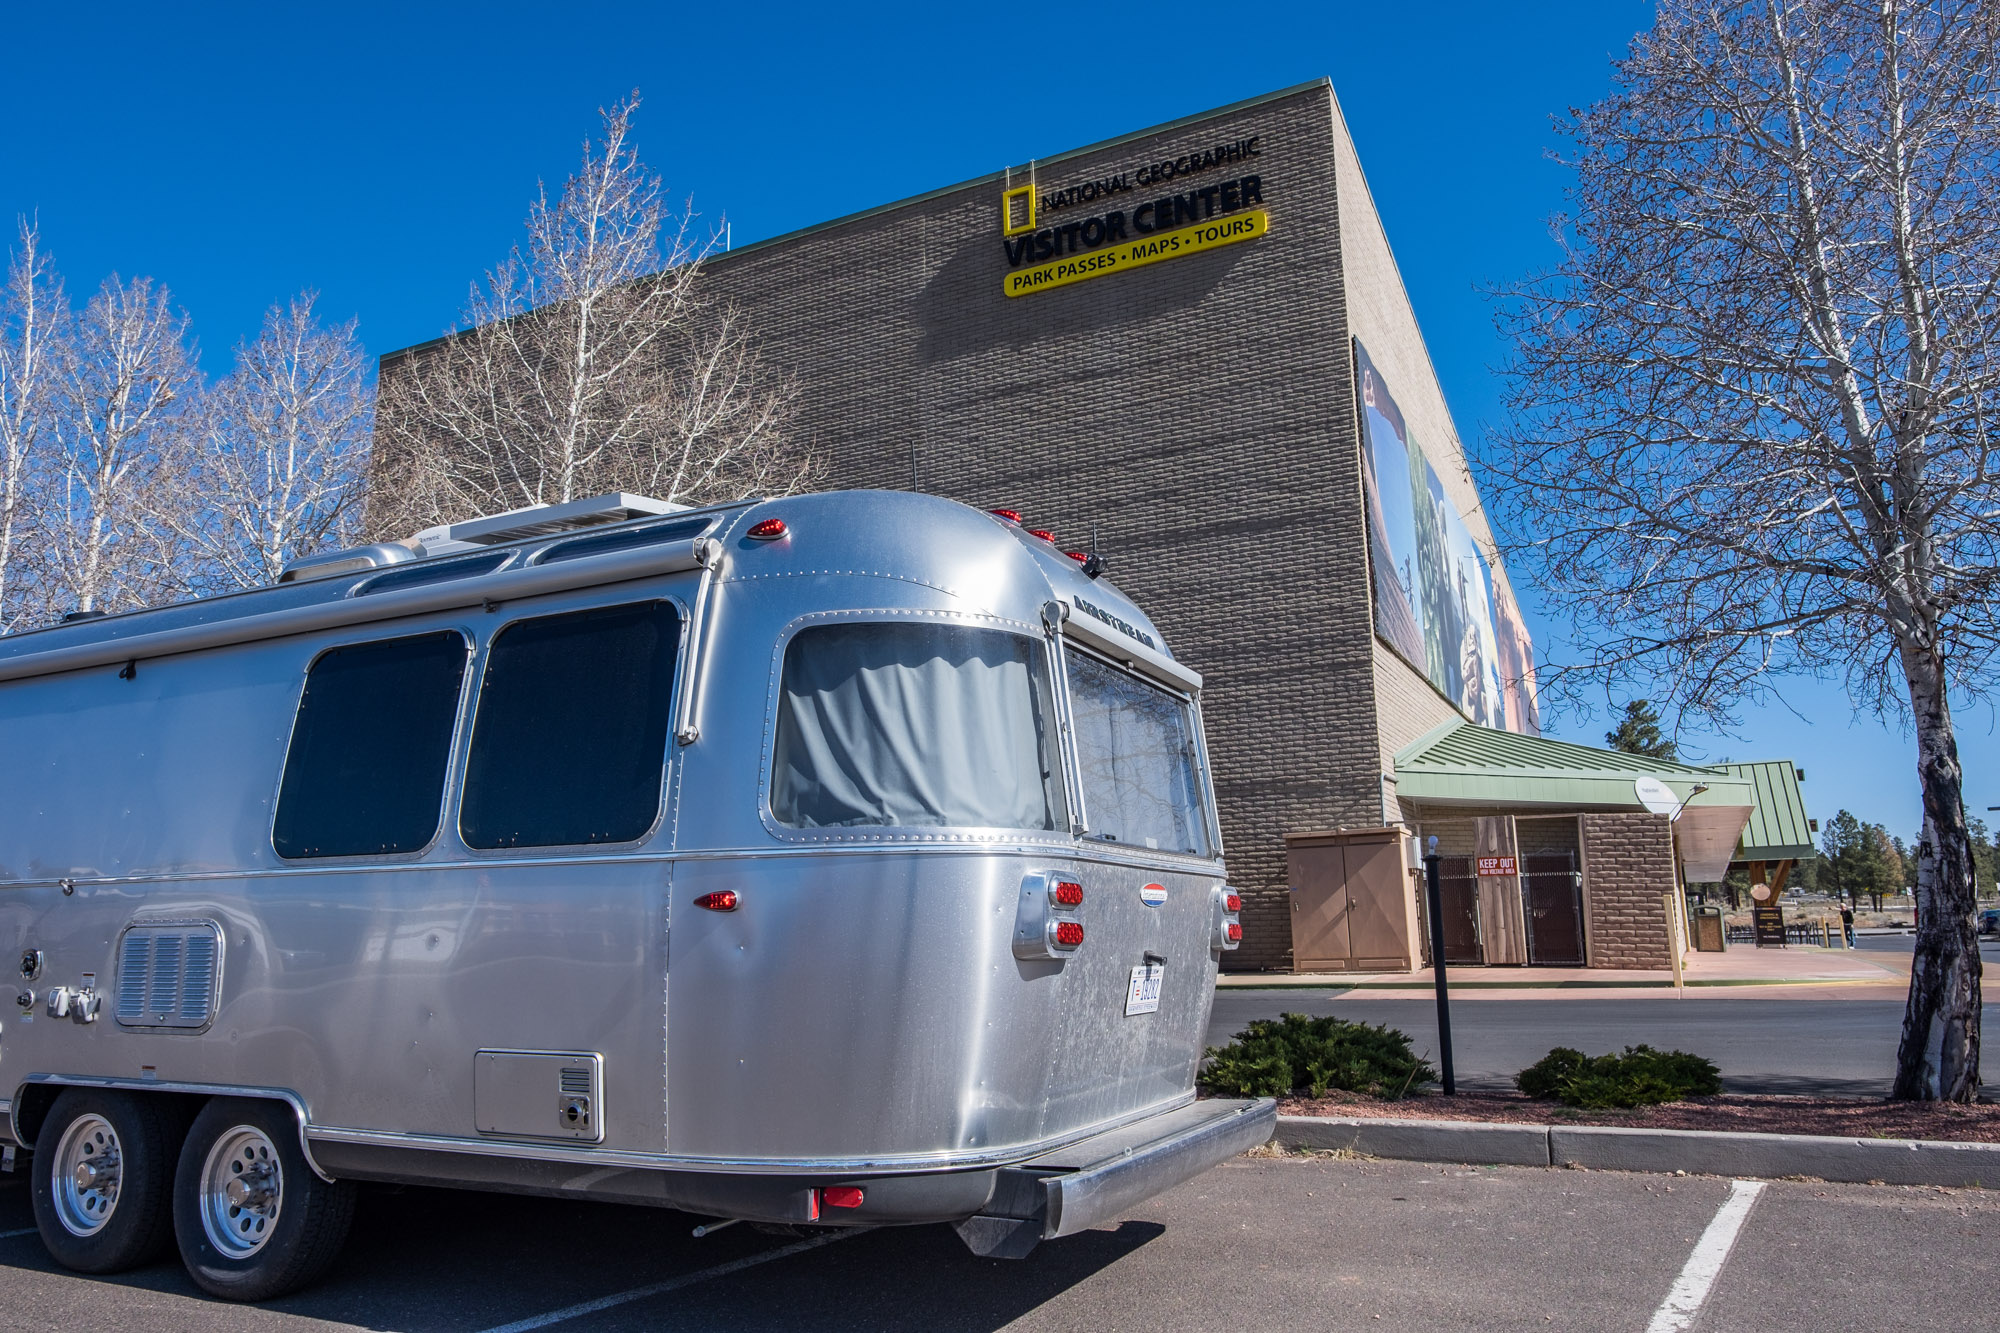 Wally the Airstream hits up the National Geographic Visitor Center outside of Grand Canyon National Park in northern Arizona.